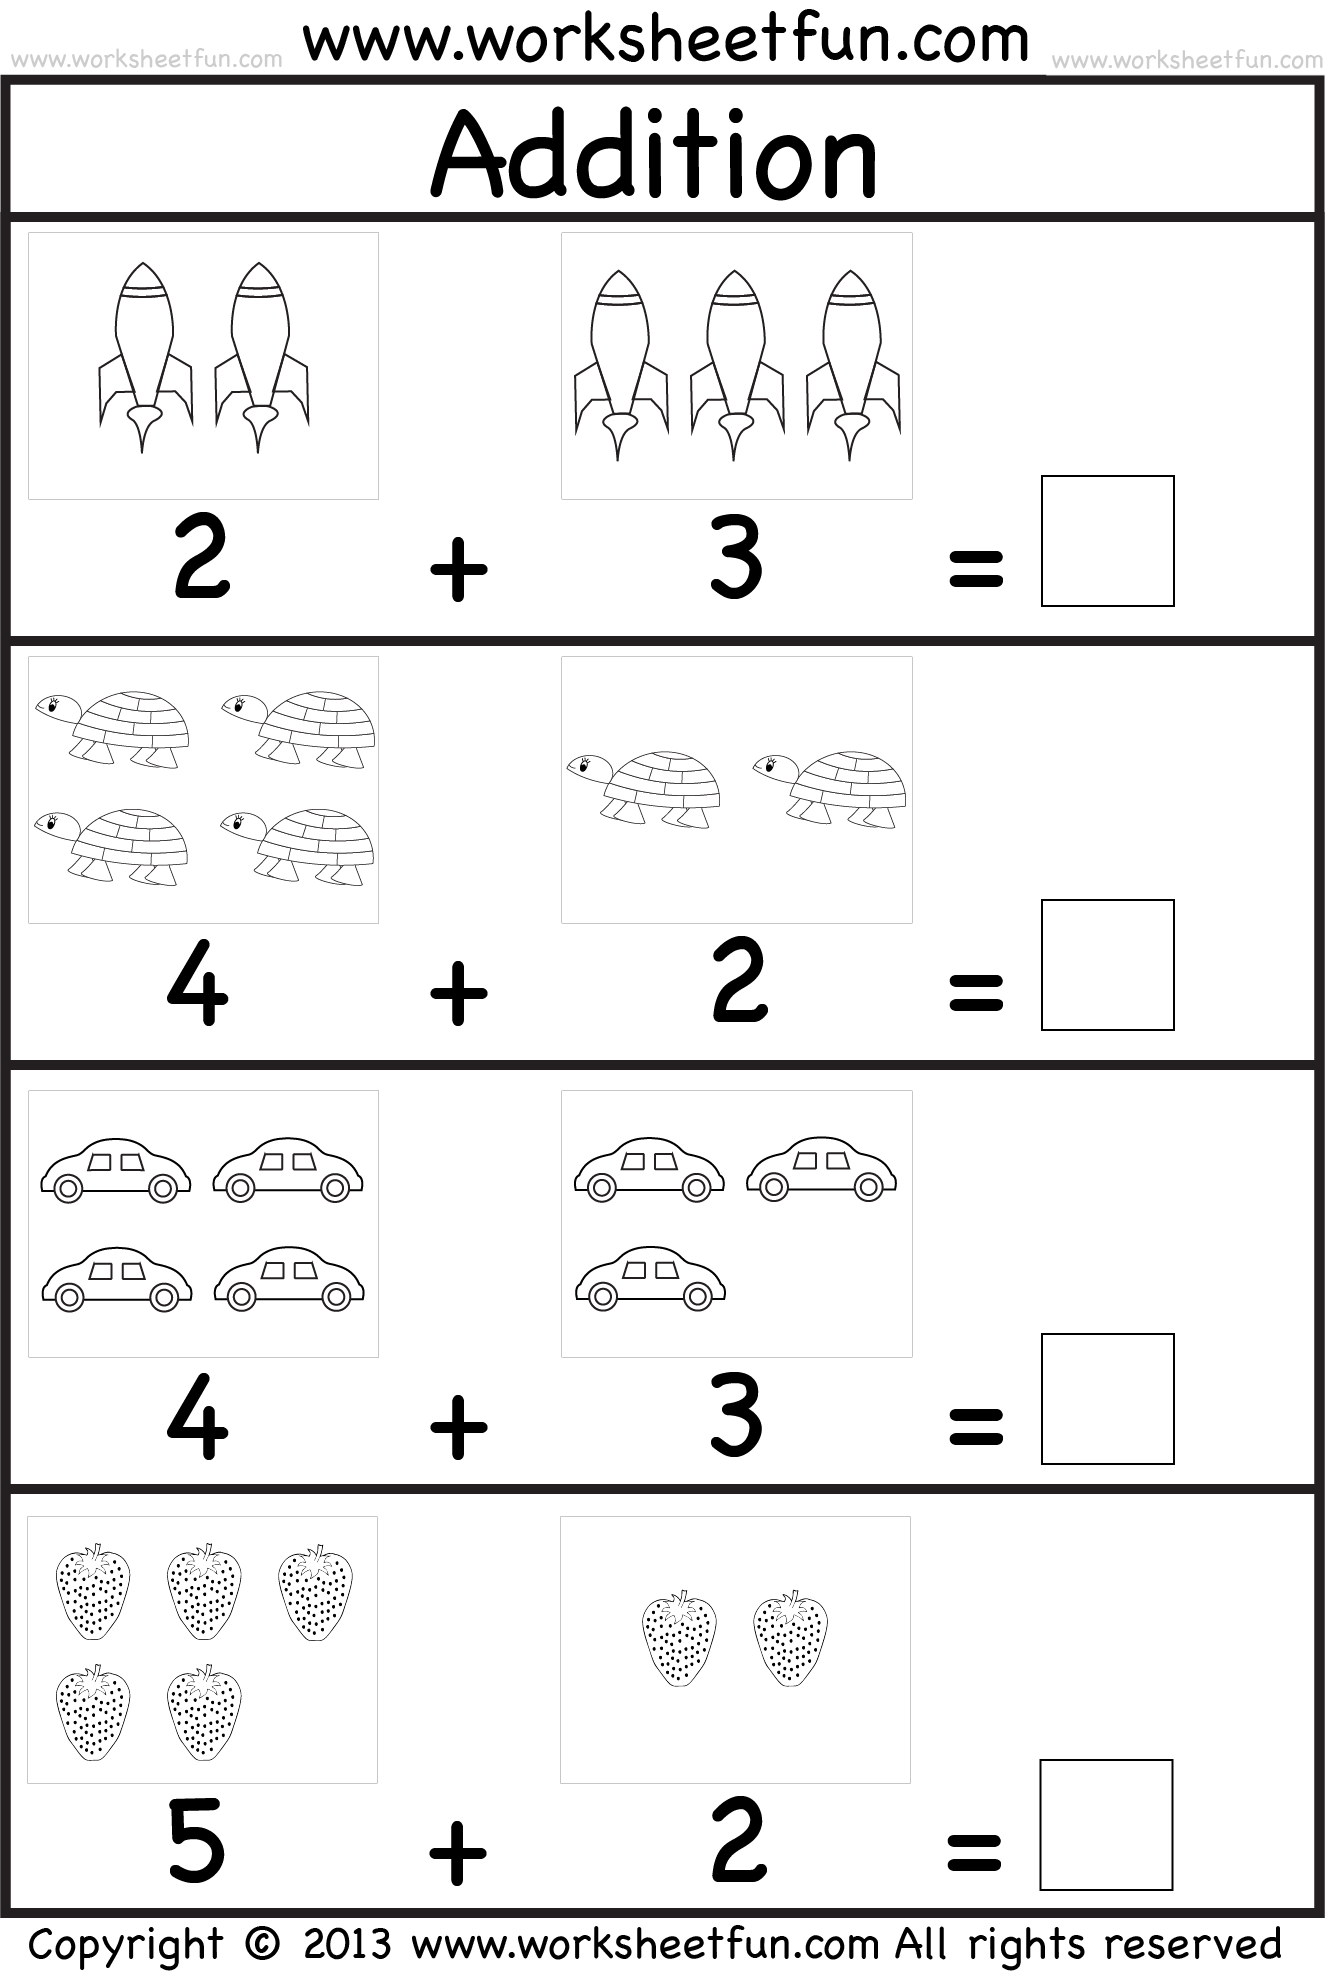 Printables Beginning Math Worksheets k math worksheets addition 7 best images of free printable preschool worksheets